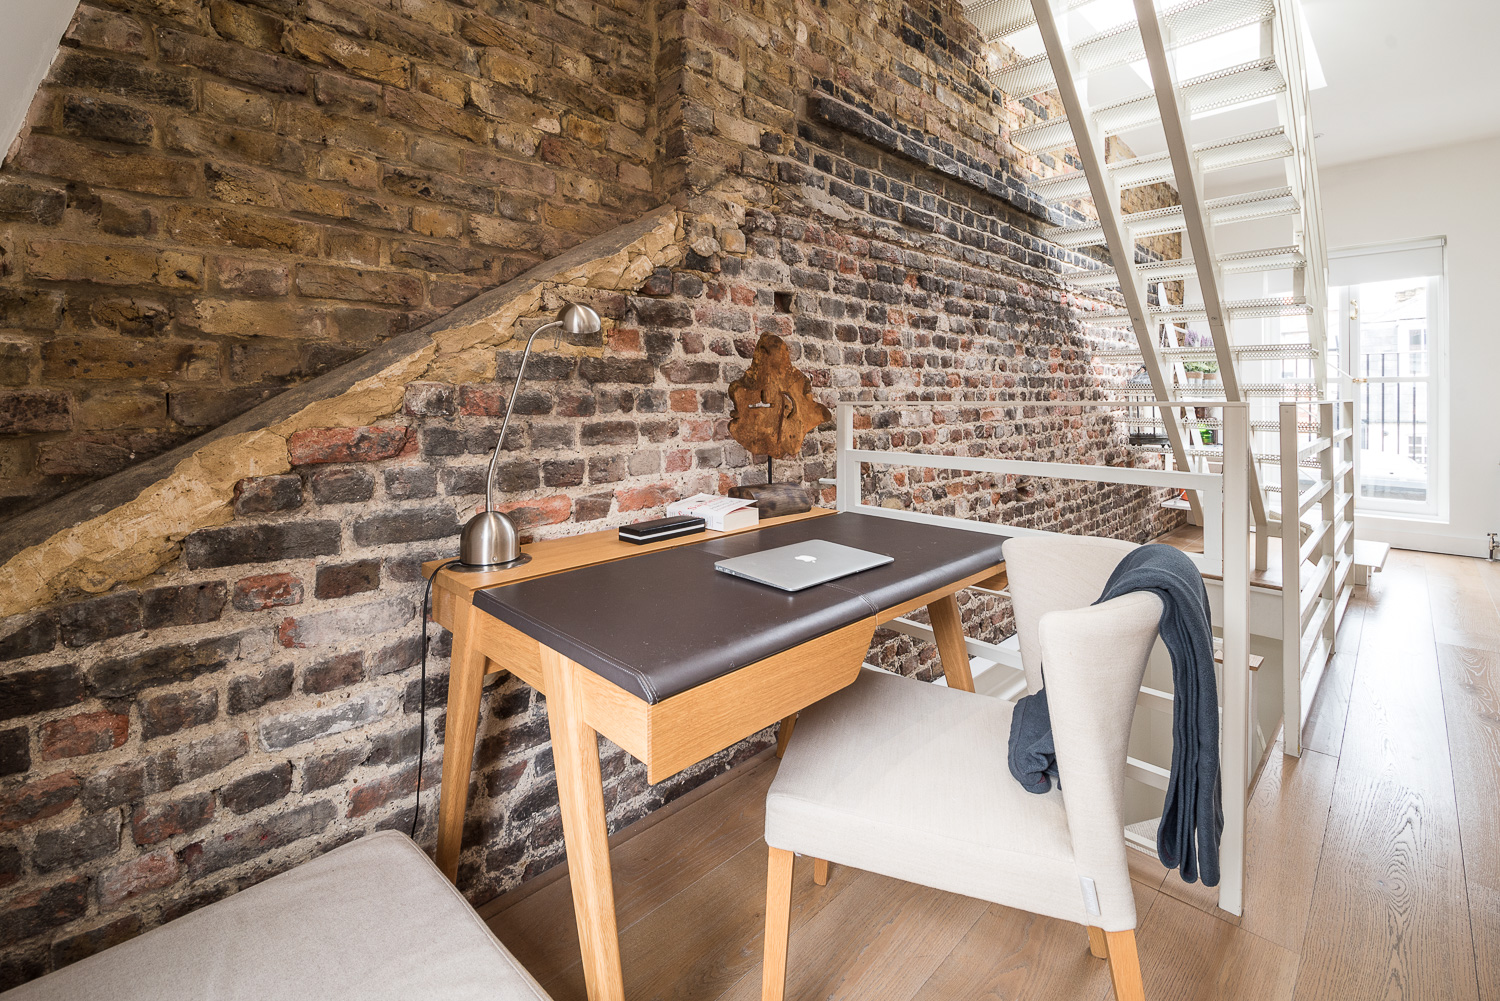 Lovelydays luxury service apartment rental - London - Fitzrovia - Foley Street II - Lovelysuite - 2 bedrooms - 2 bathrooms - Working desk - edd3e32182b0 - Lovelydays